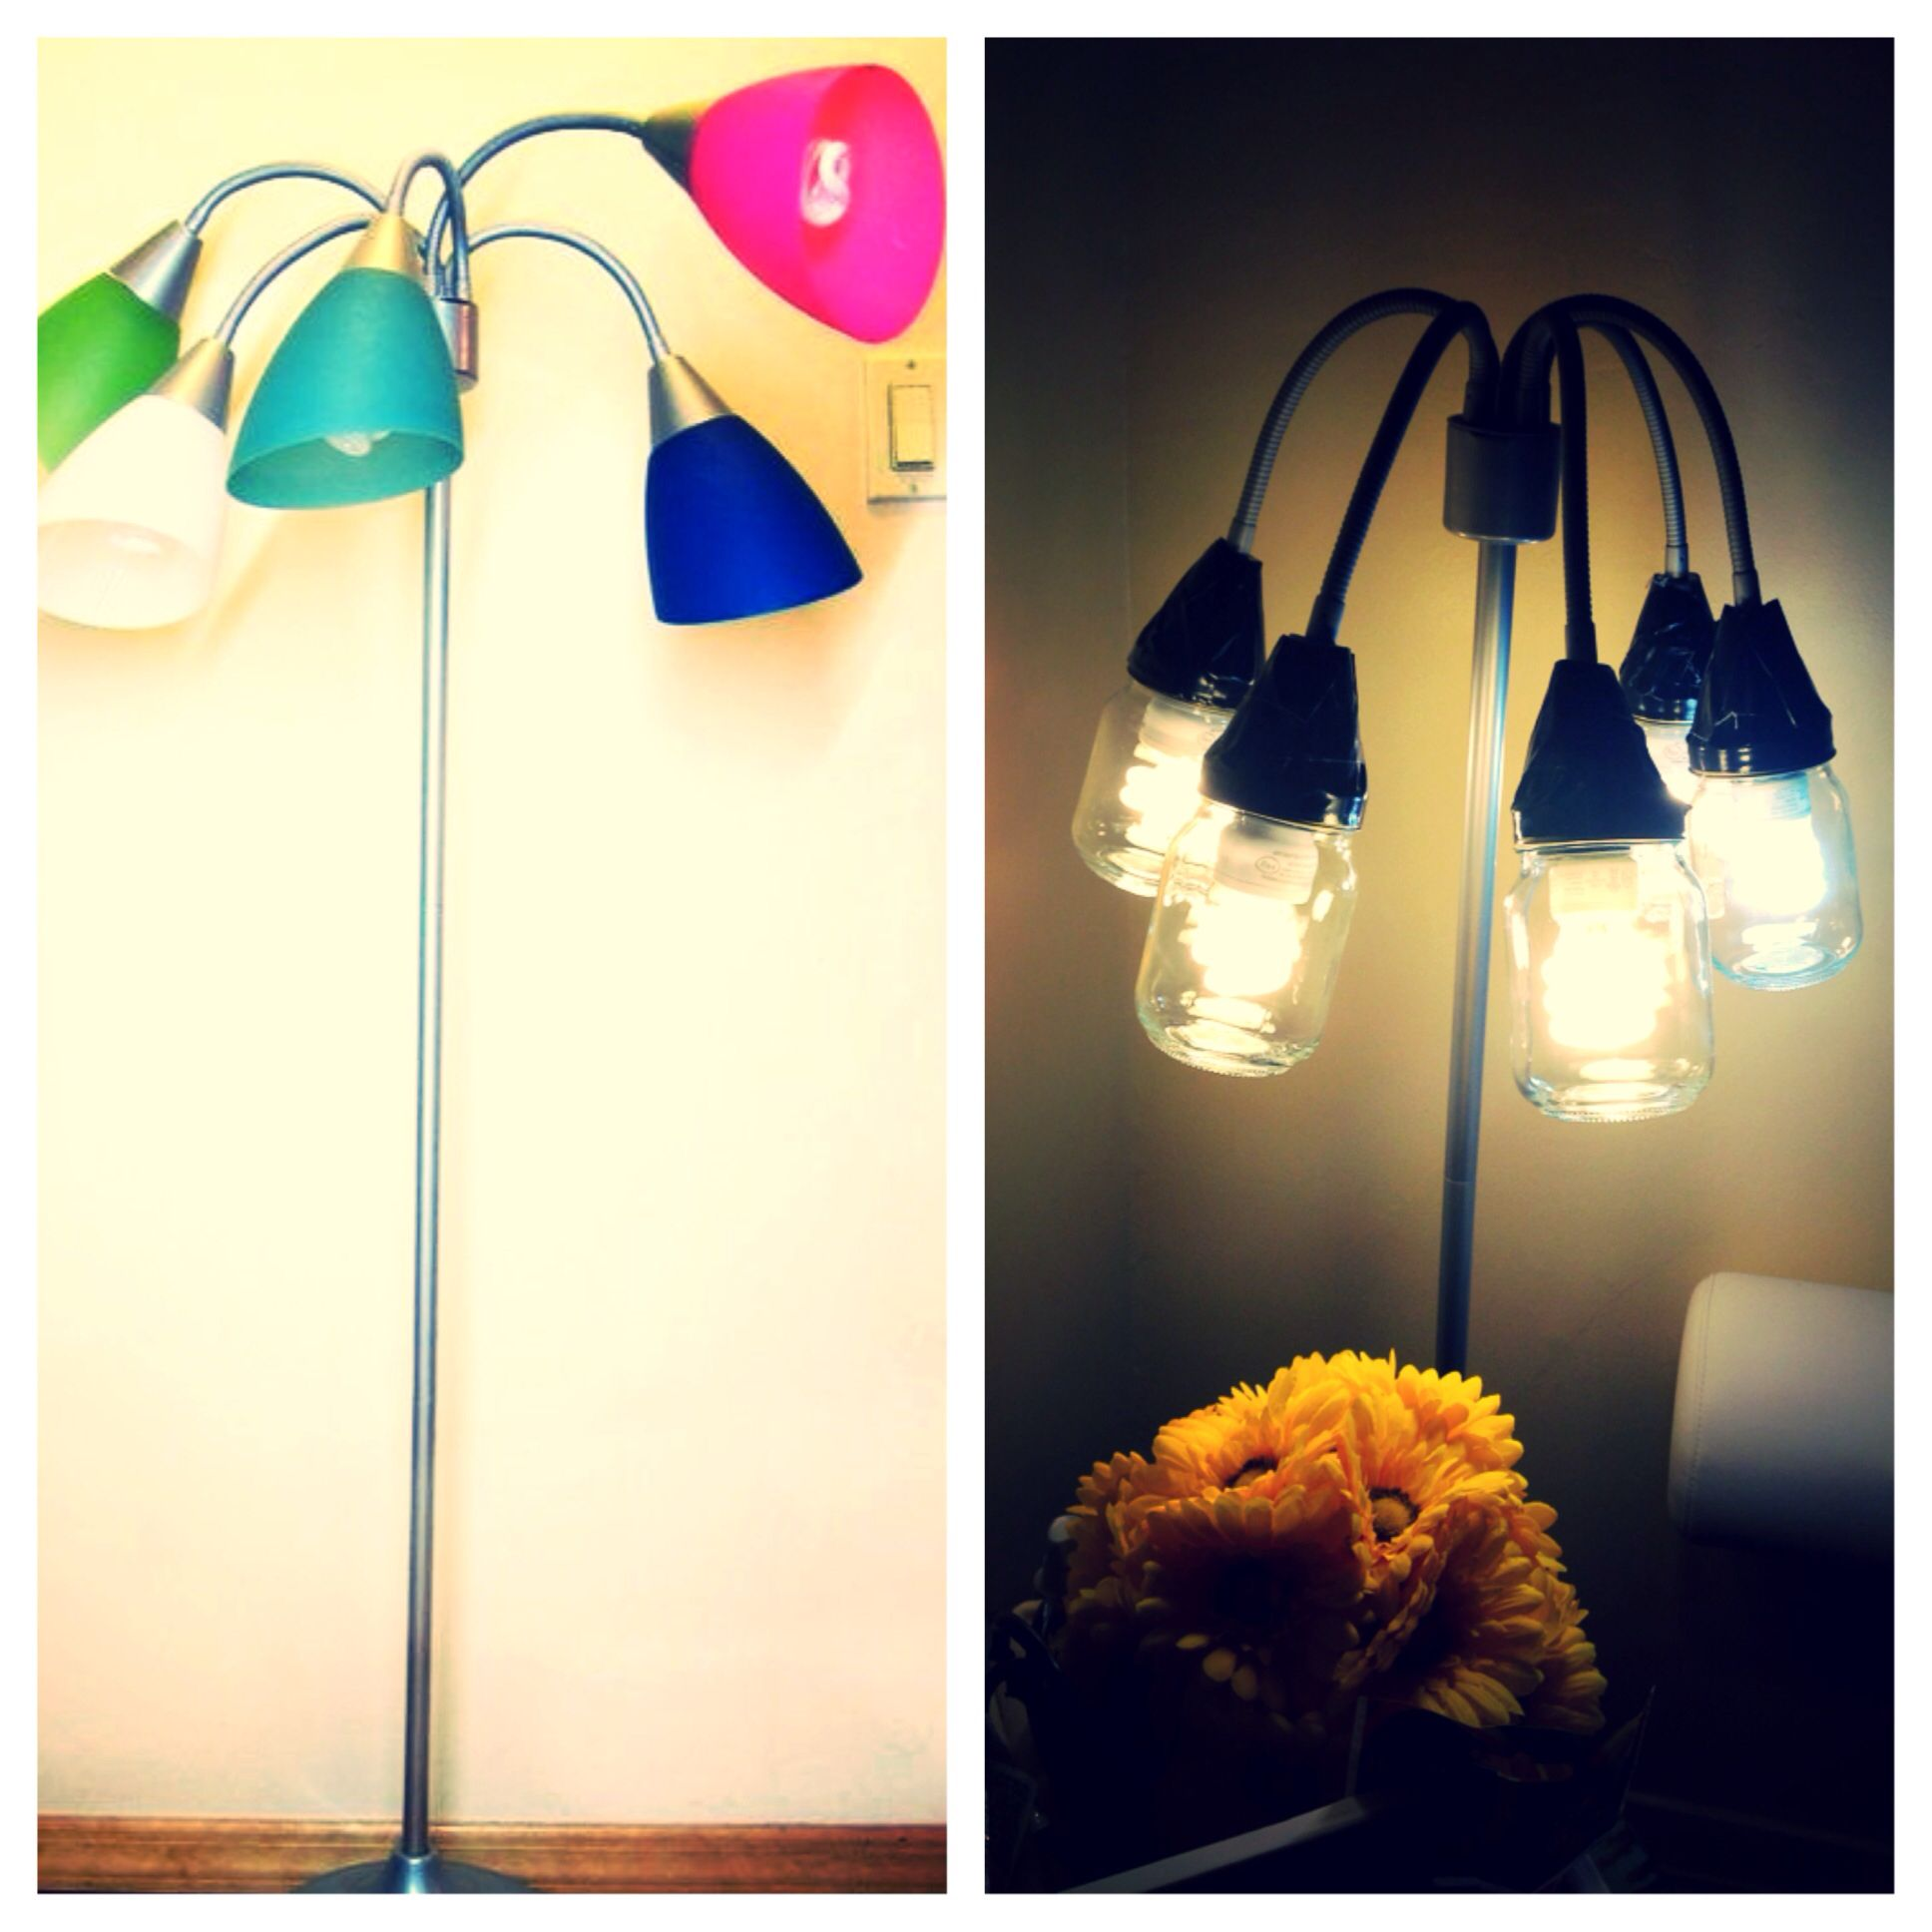 Decorate your house with colorful floor lamps